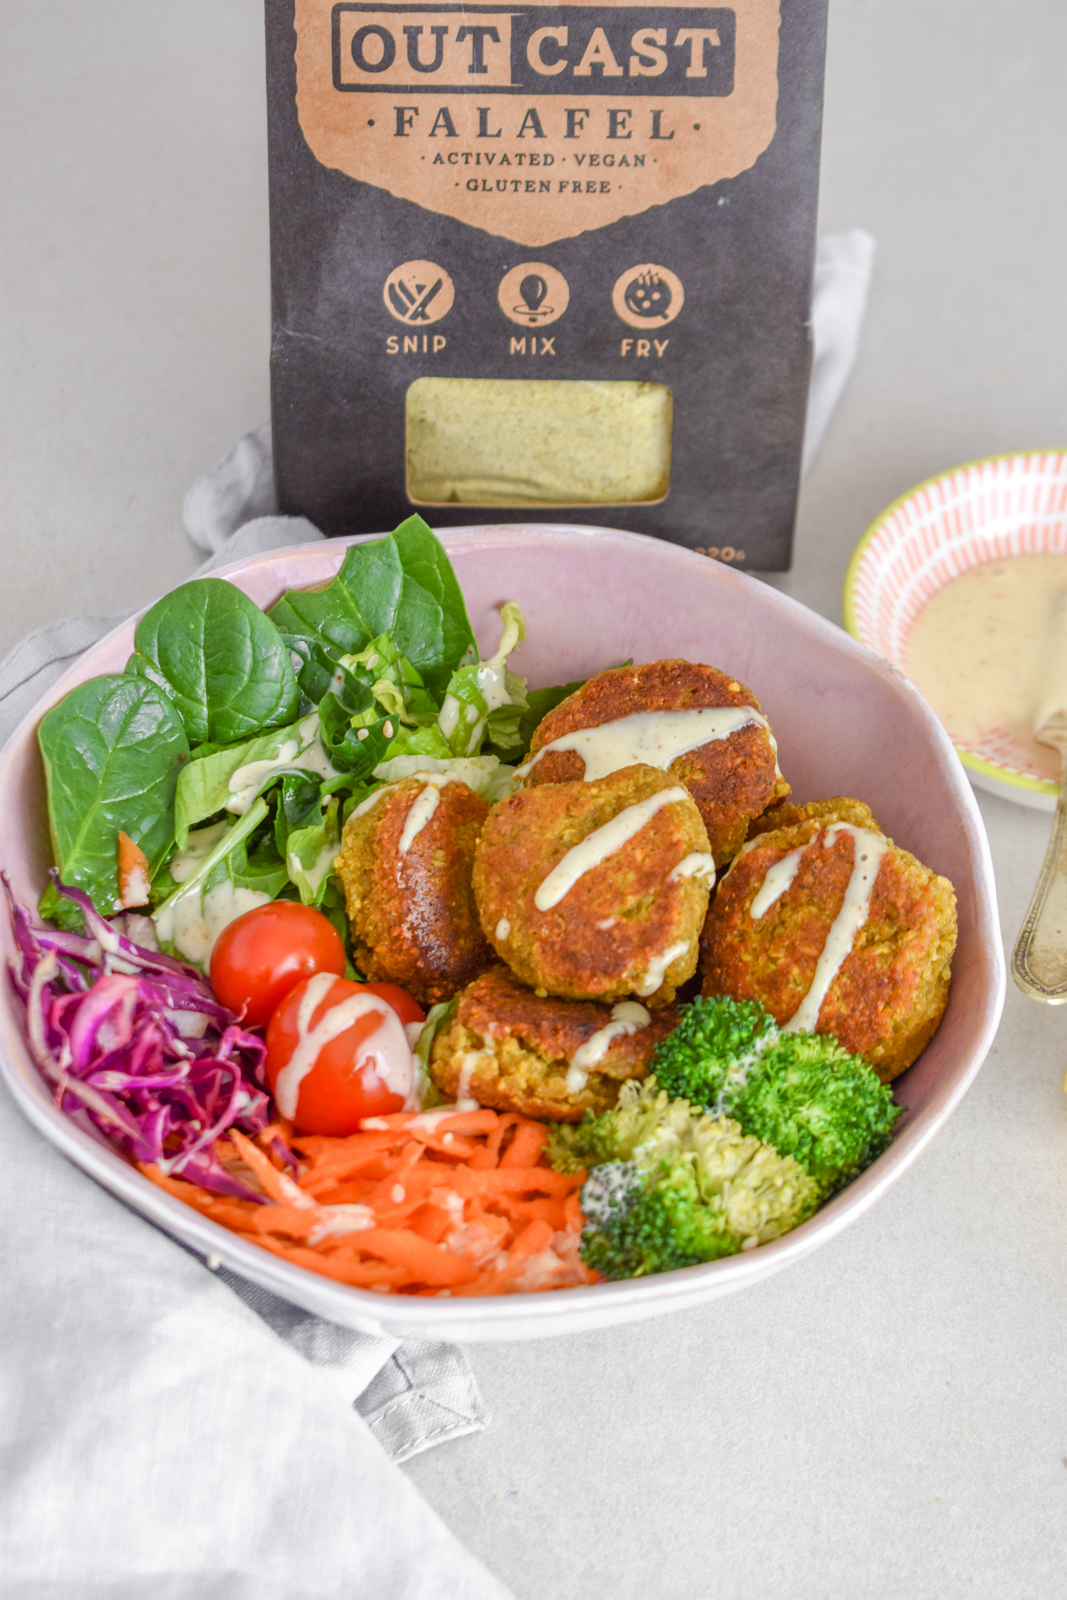 Making Falafel with Outcast Food's Easy Mix